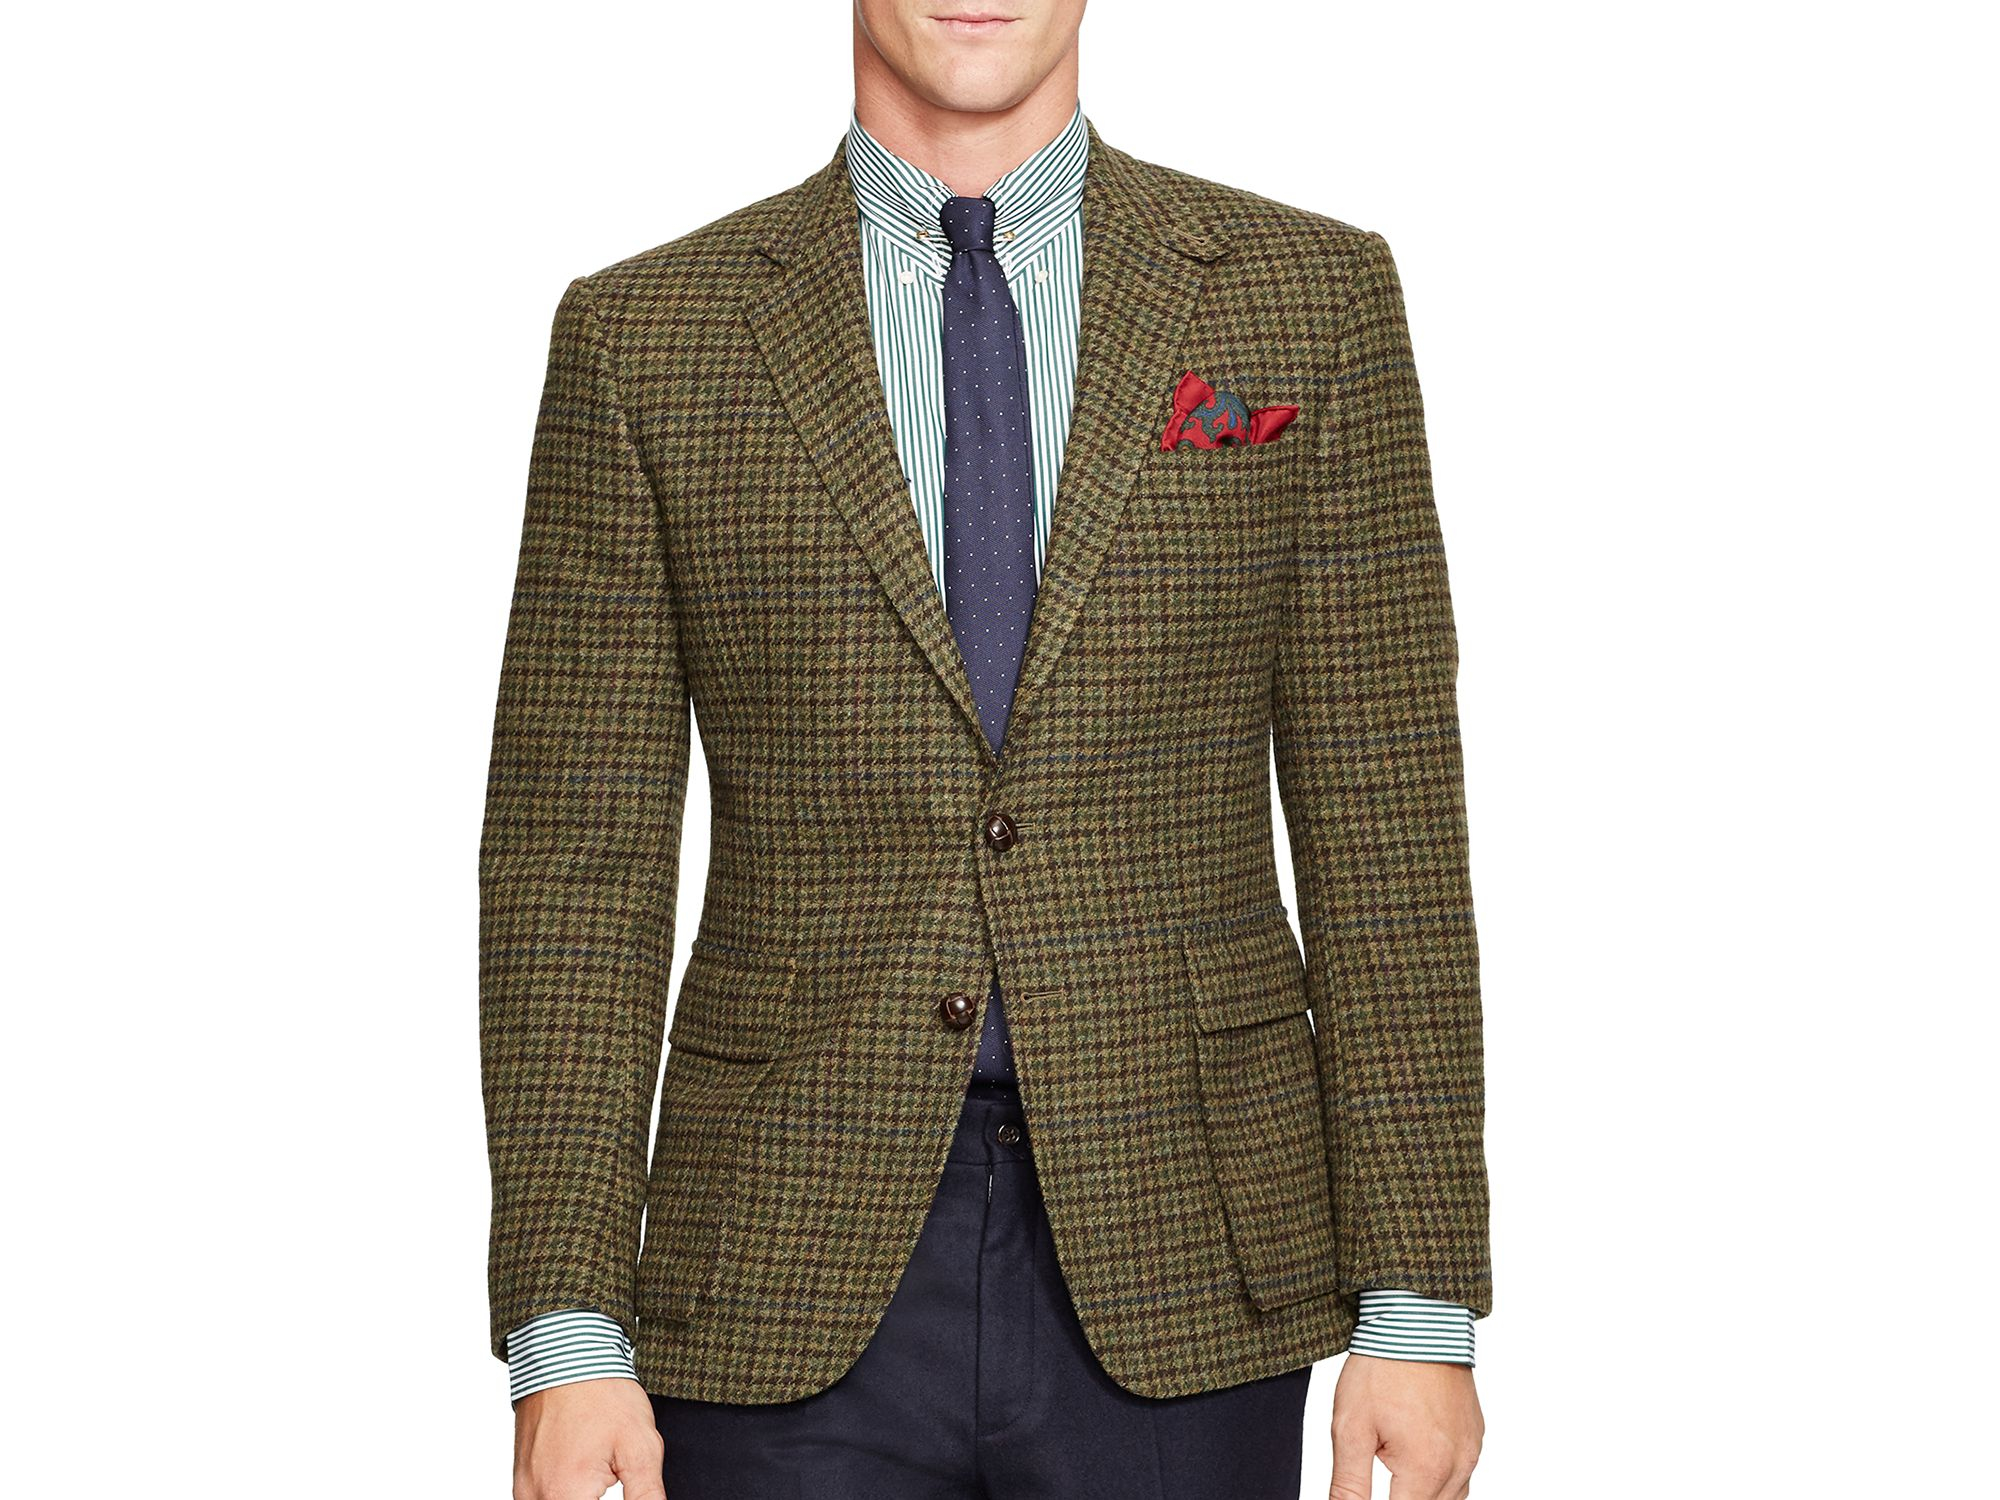 Green sports jacket blazer jackets review for Polo shirt with sport coat